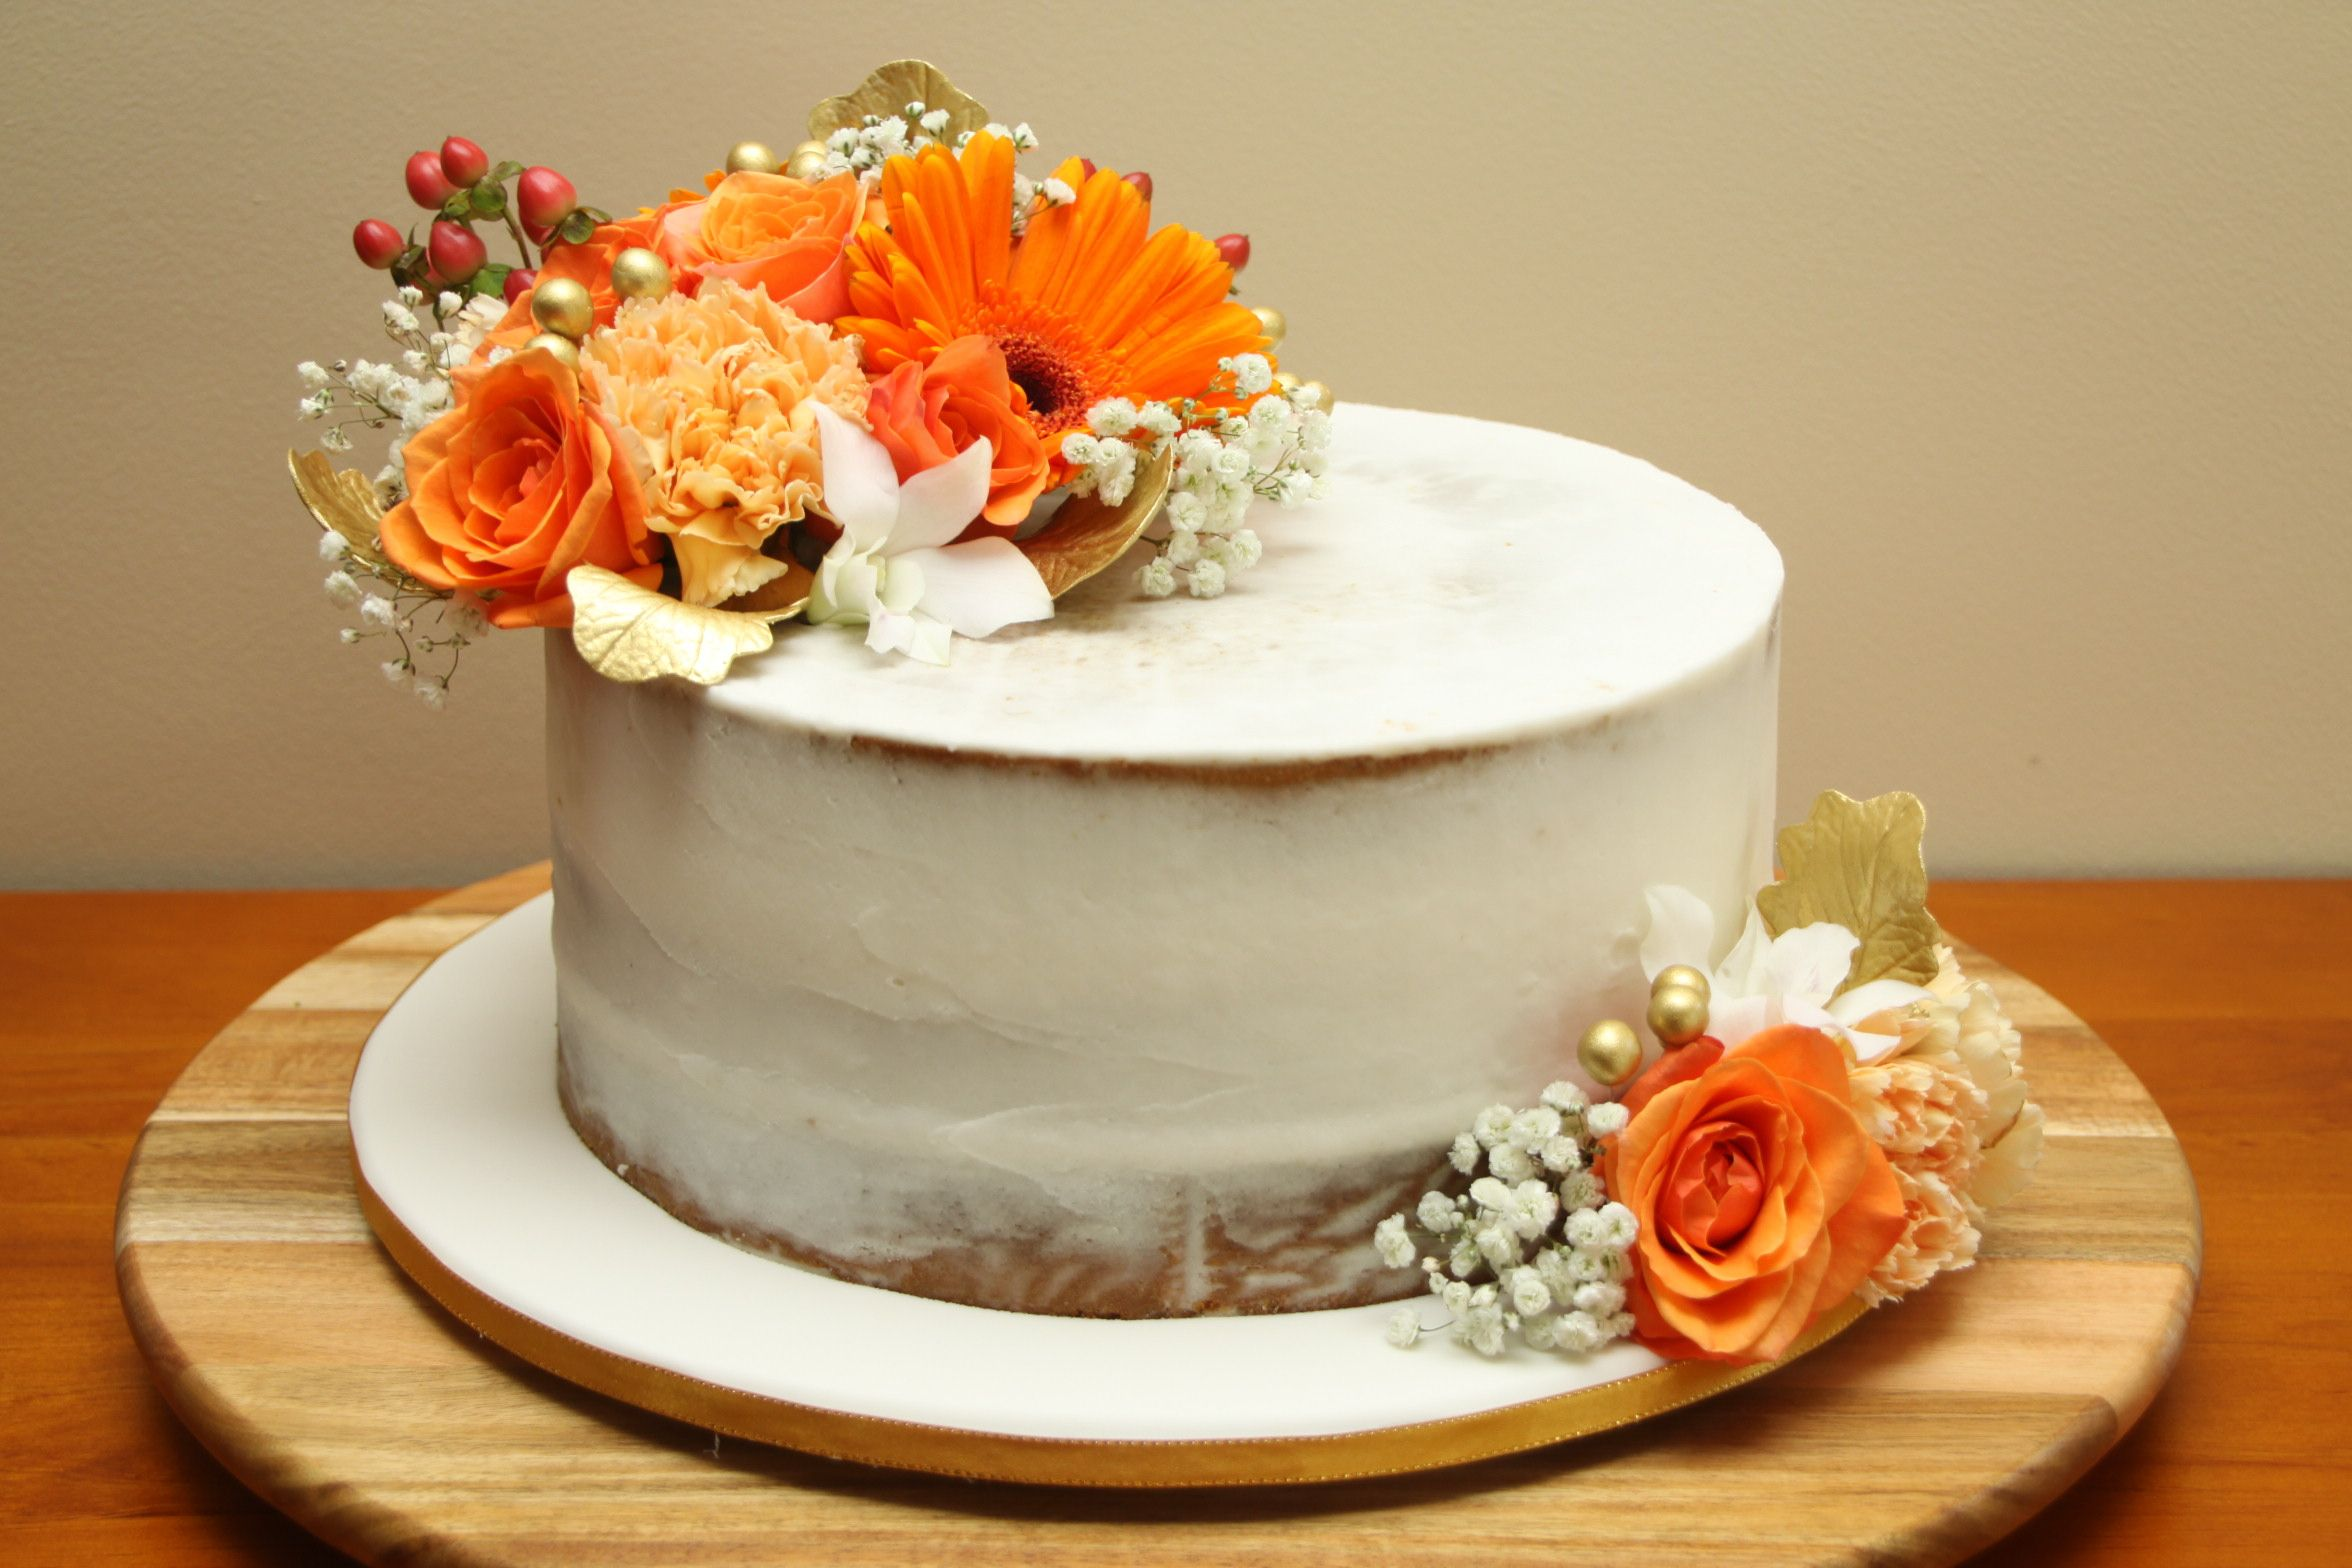 Orange & Gold Celebration Cake